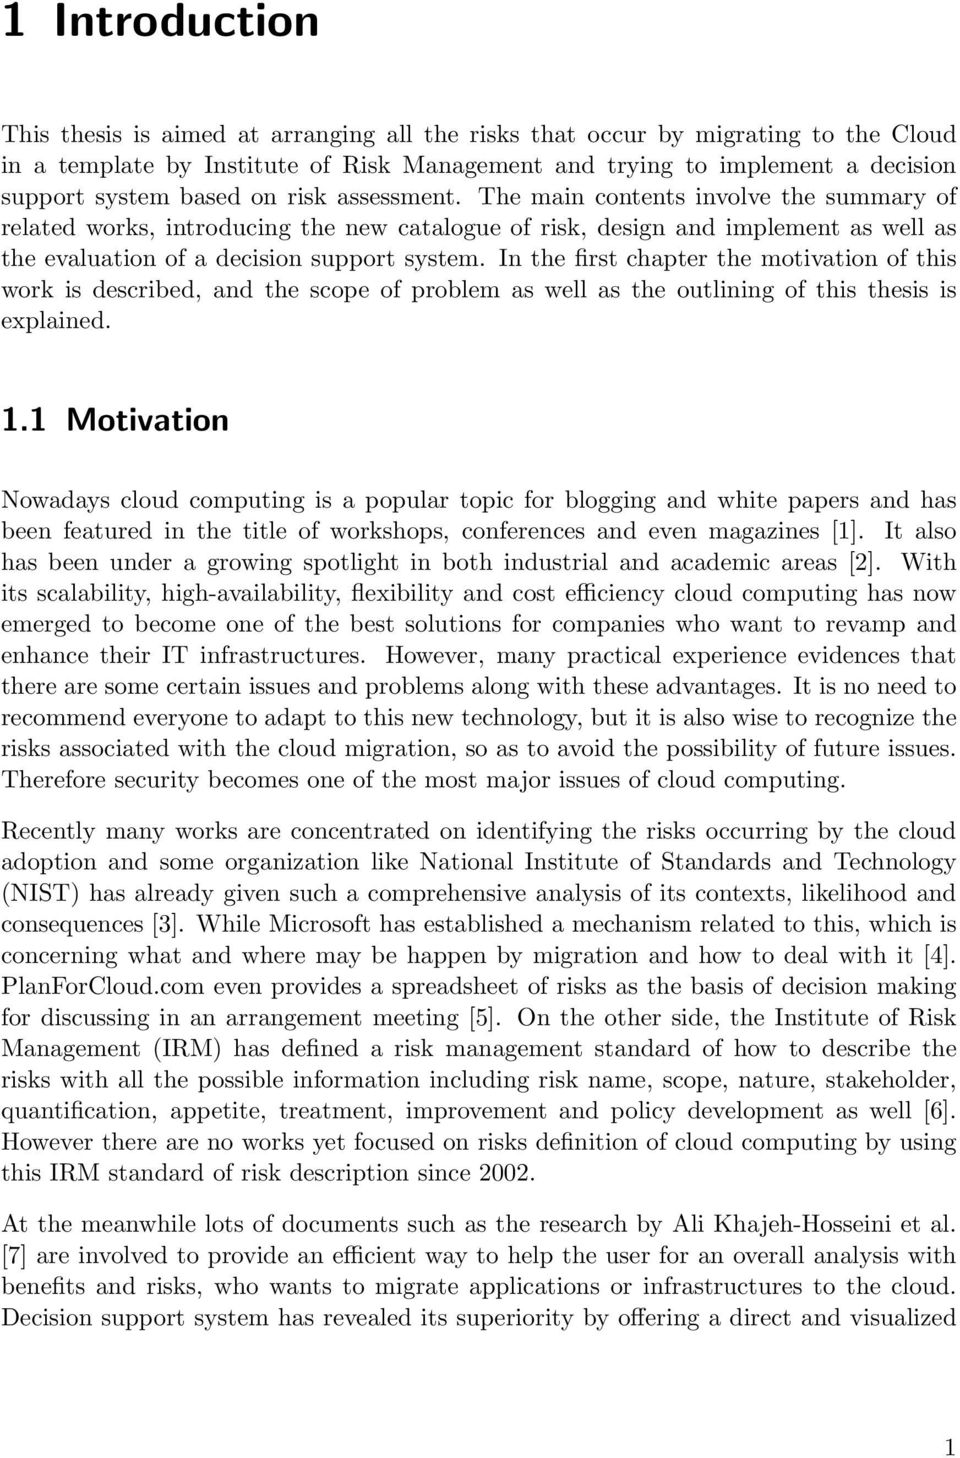 In the first chapter the motivation of this work is described, and the scope of problem as well as the outlining of this thesis is explained. 1.